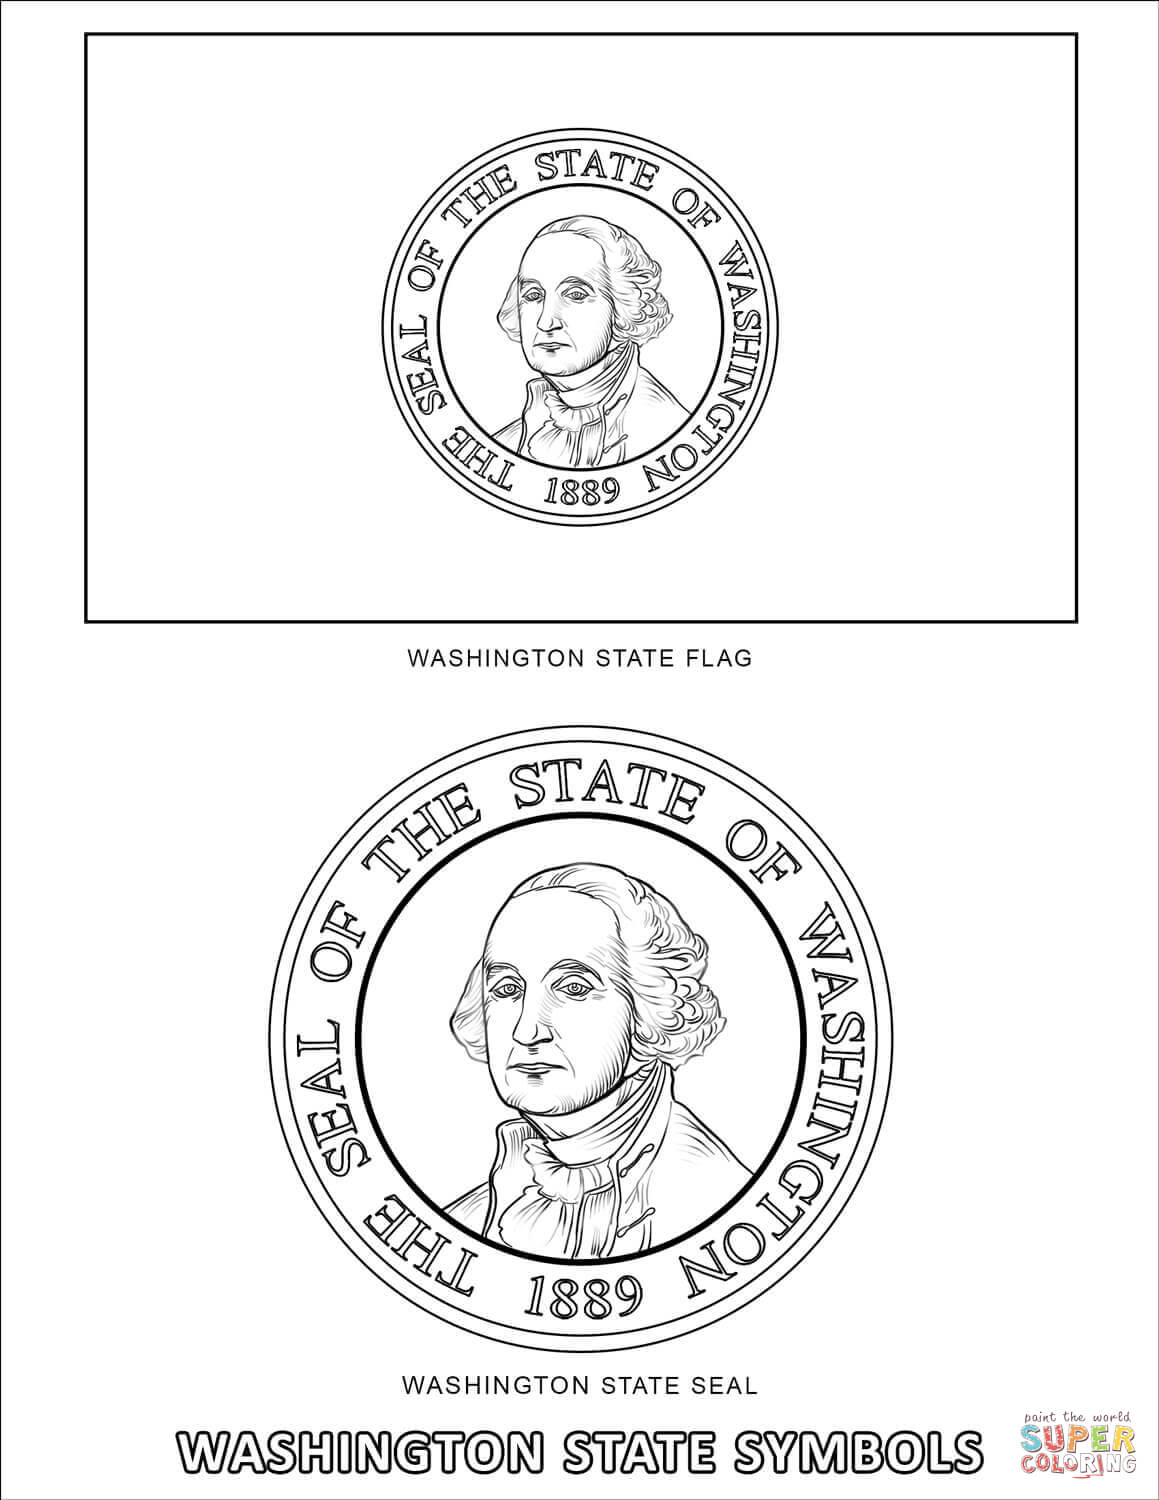 Washington State Symbols Coloring Page